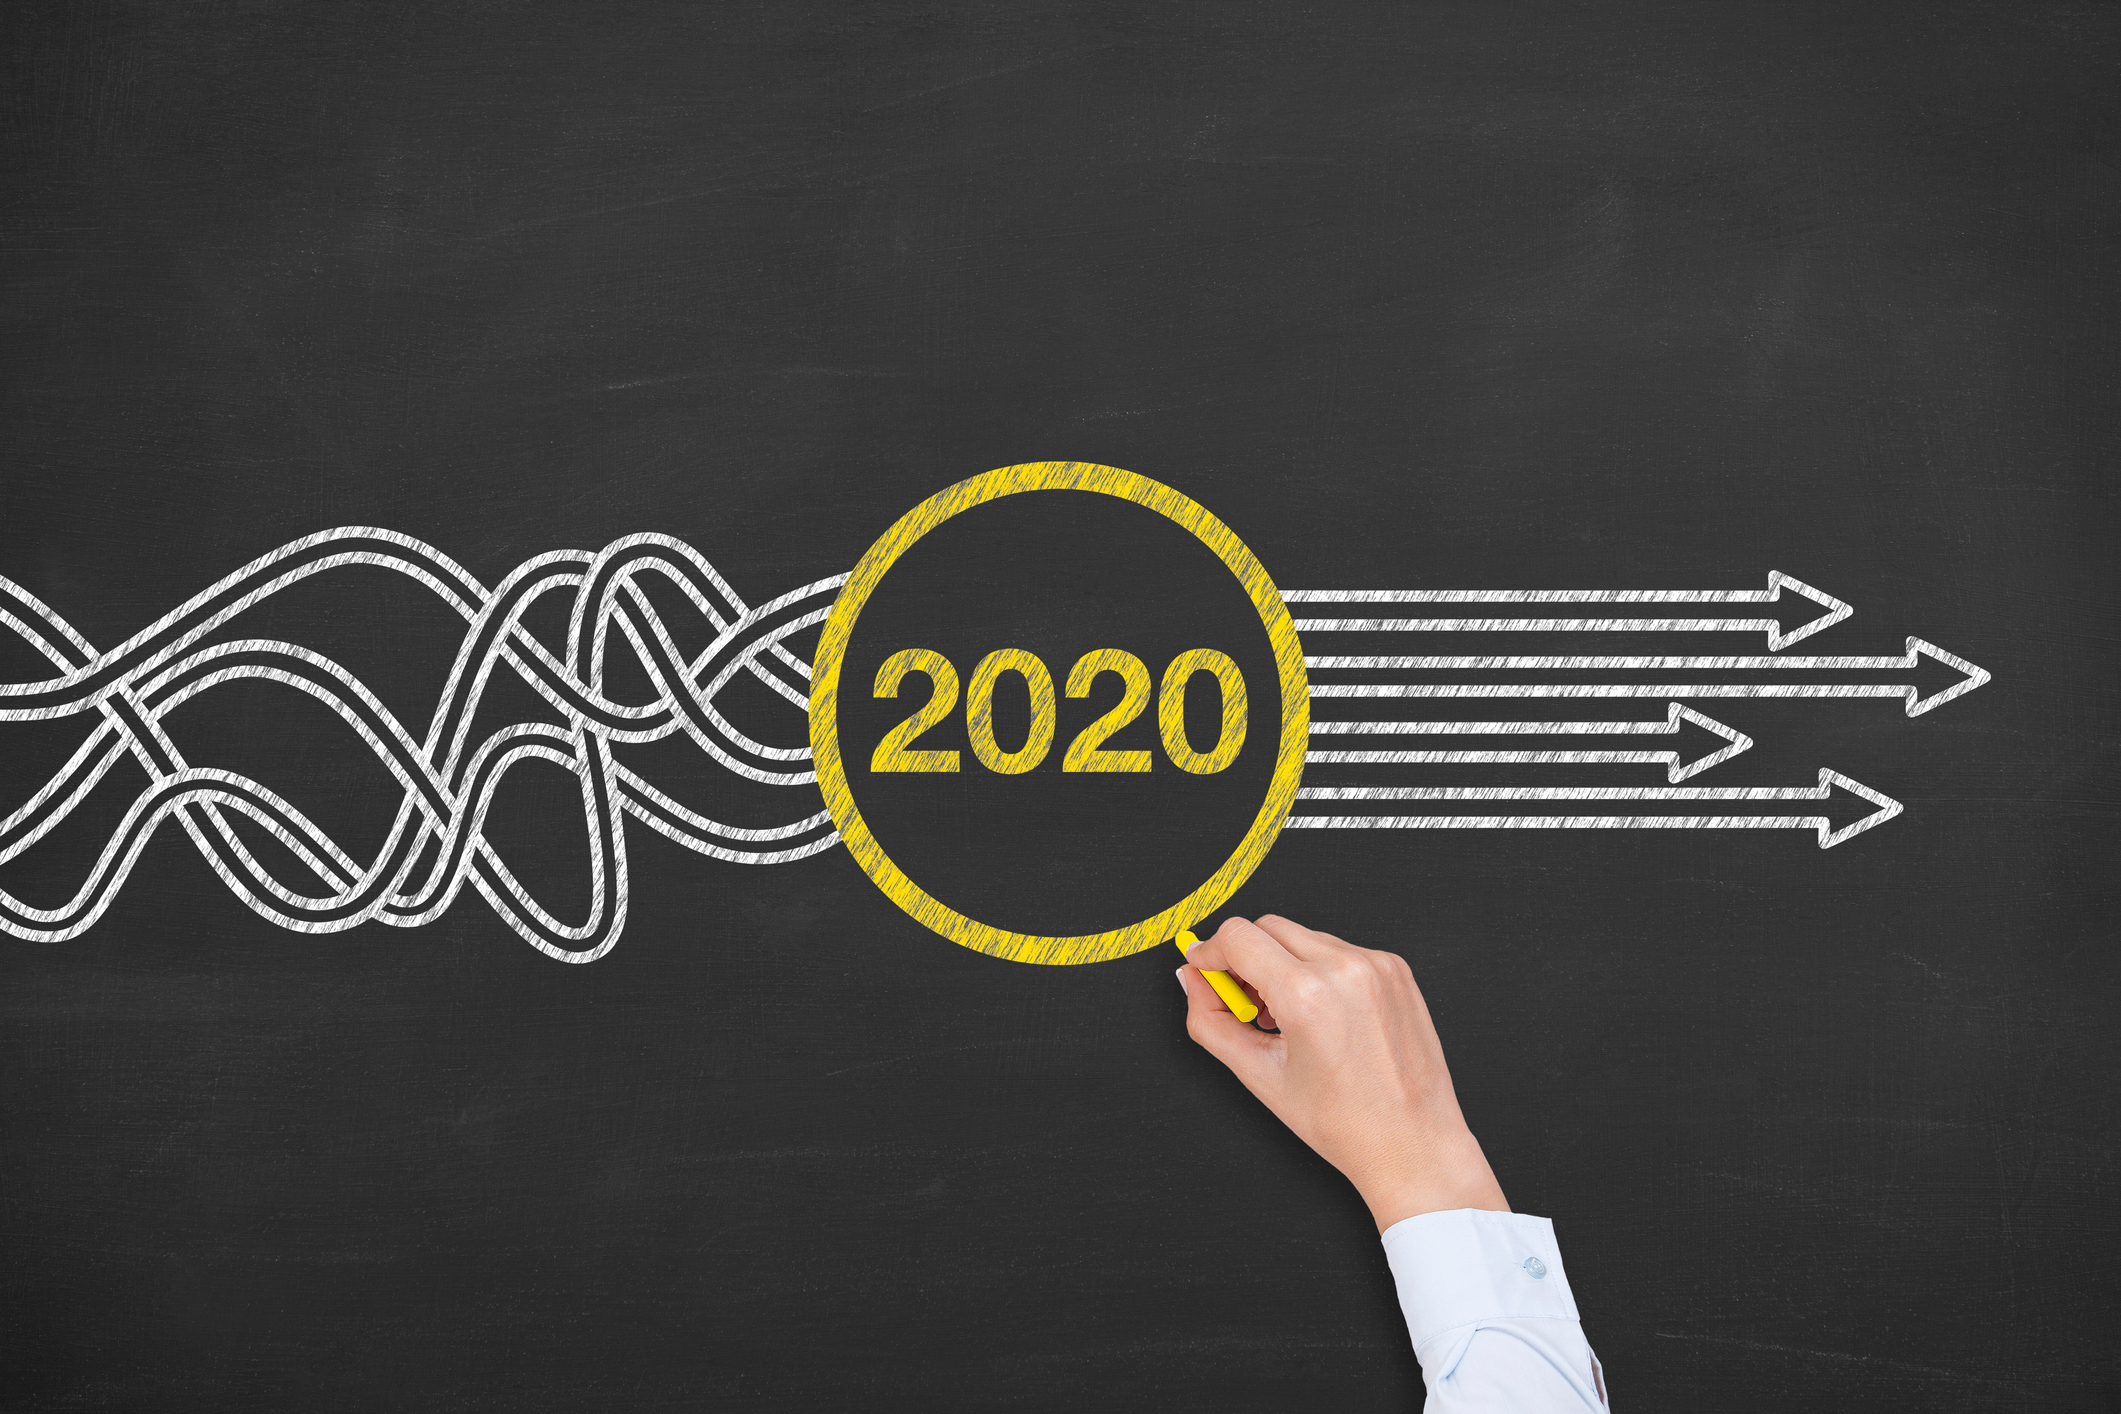 The 5 Well-Being Trends to Watch in 2020